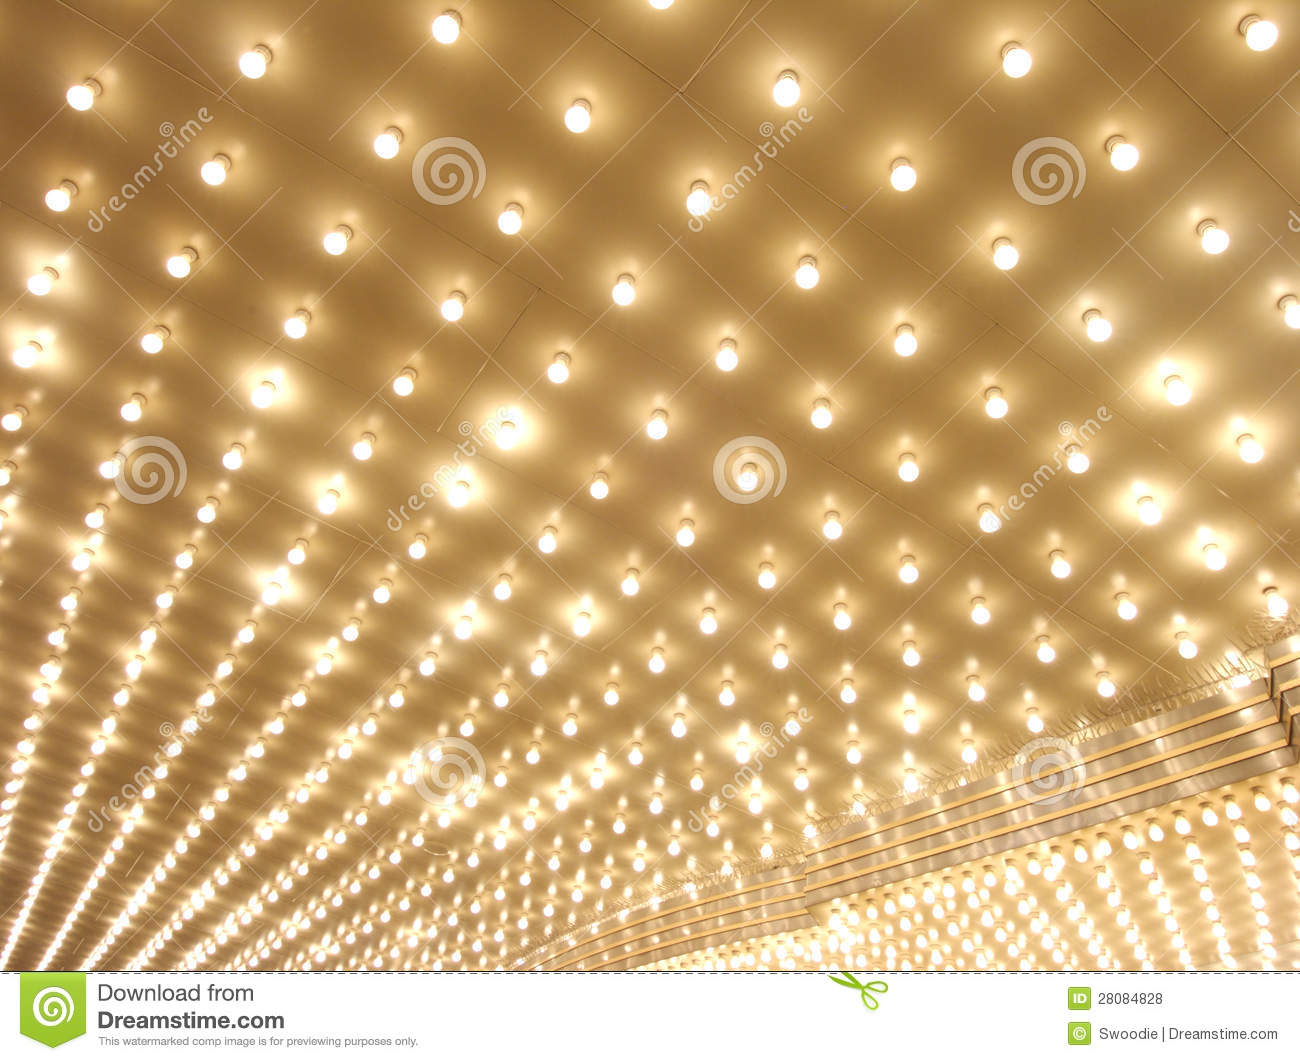 Marquee Lights Royalty Free Stock Photos Image 28084828